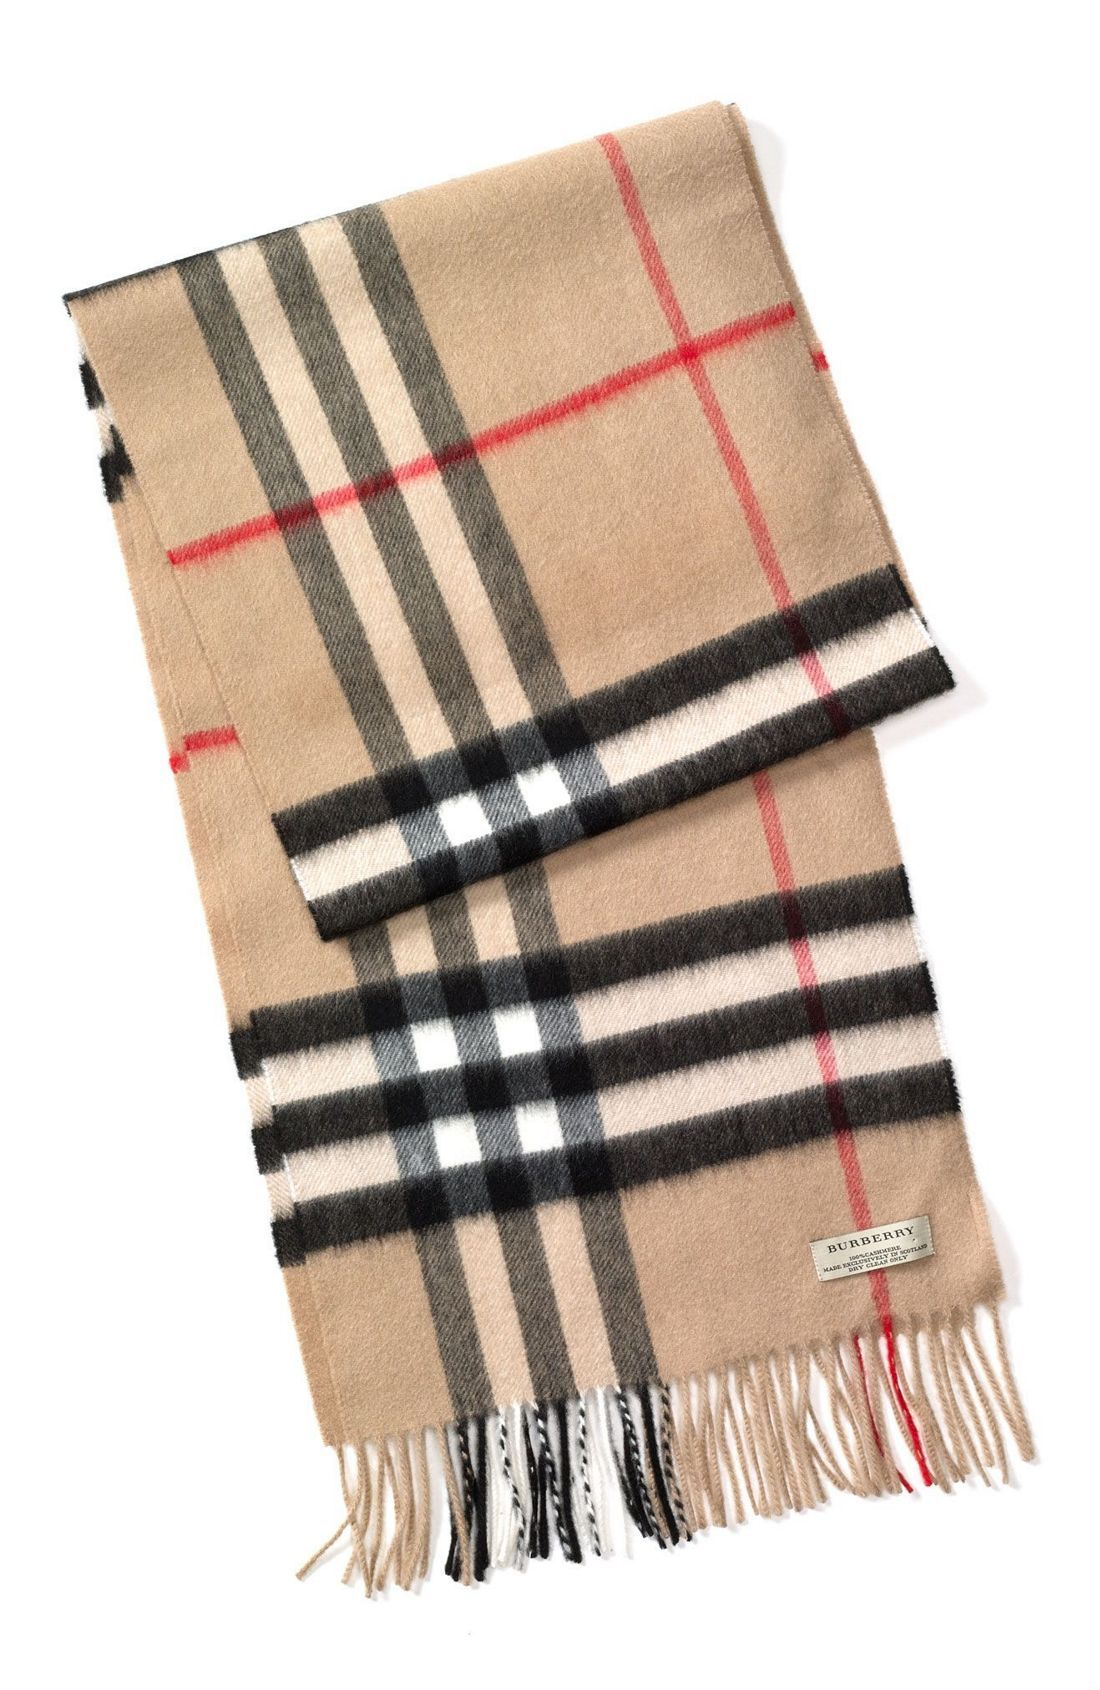 Classic luxury  Giant Burberry scarf that is so soft and cozy.   Our ... 18aebd2daa6